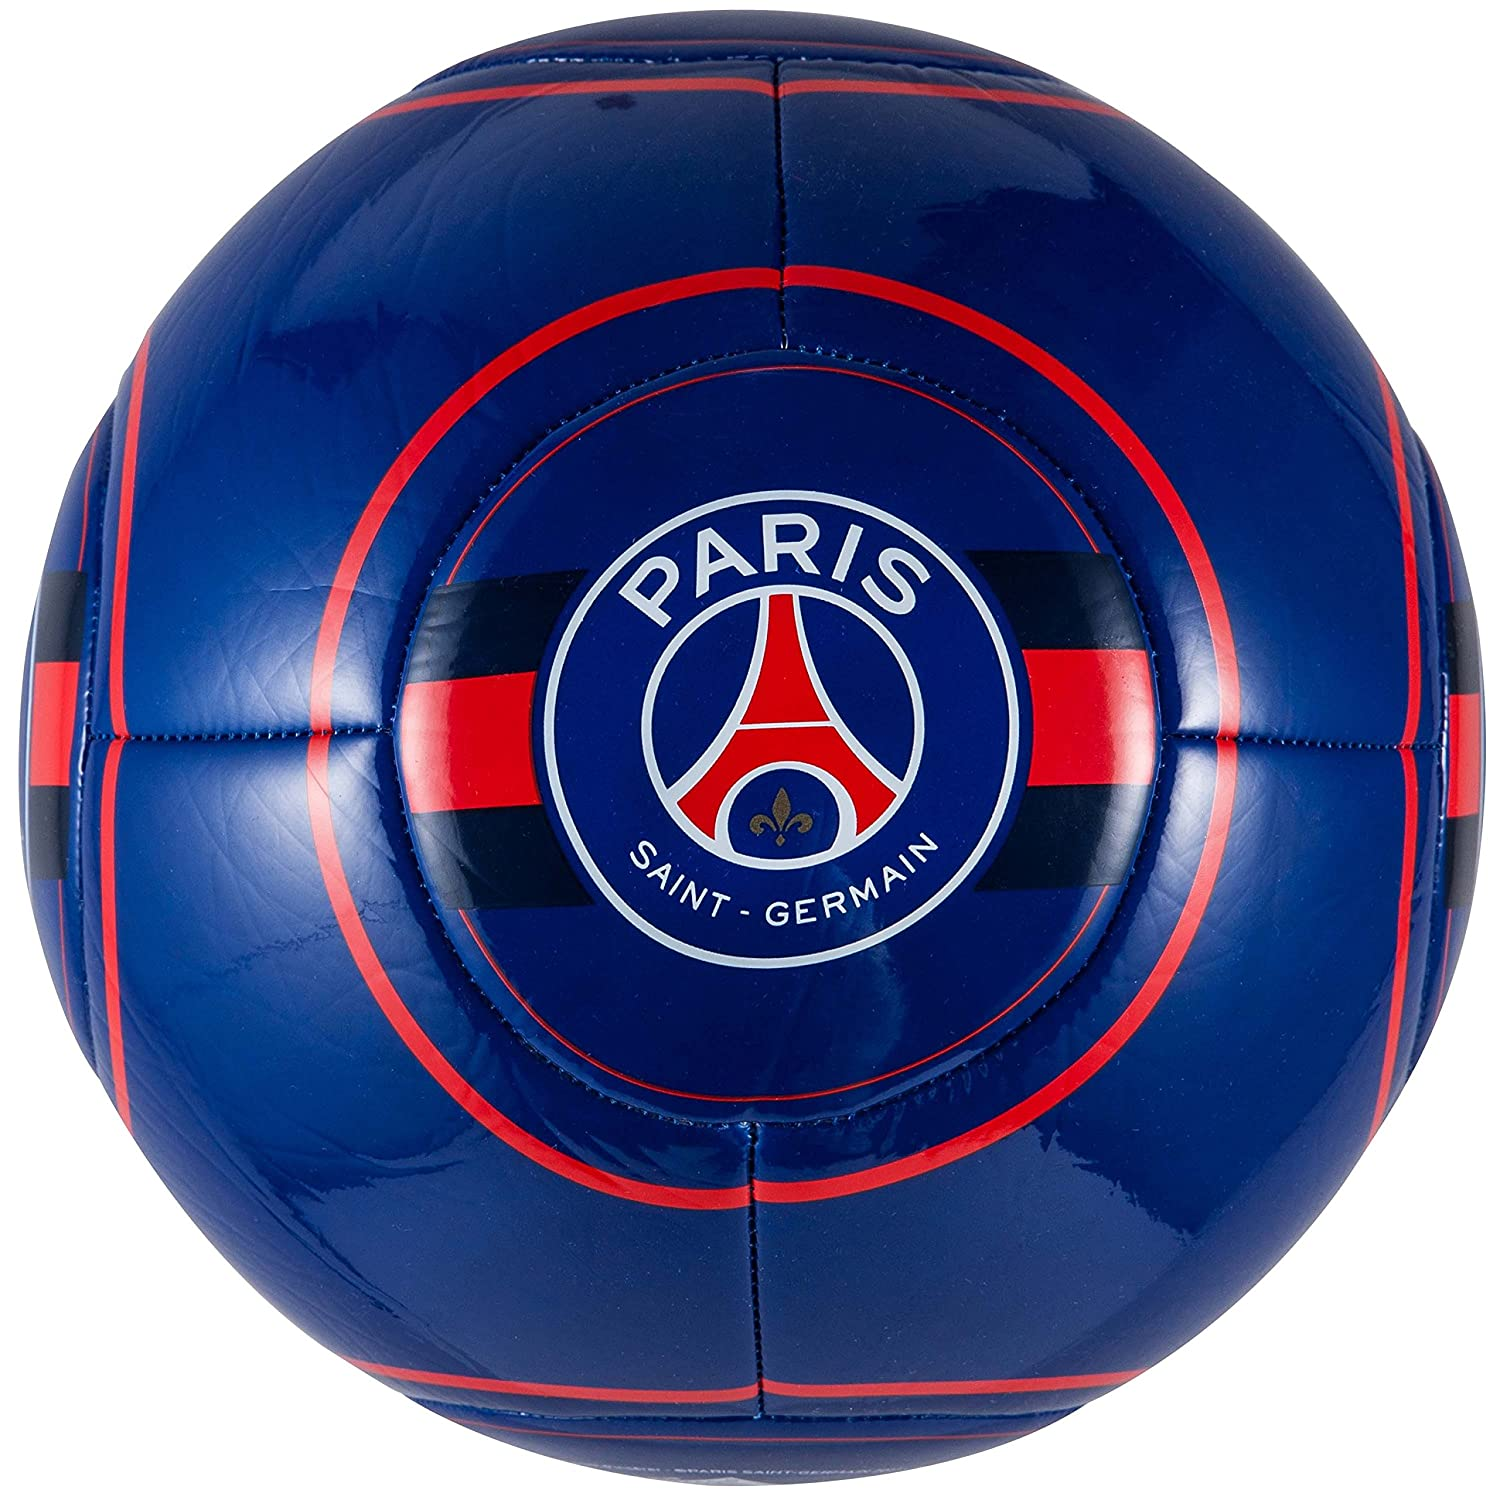 Balón de fútbol Paris Saint Germain - Talla 5: Amazon.es: Deportes ...